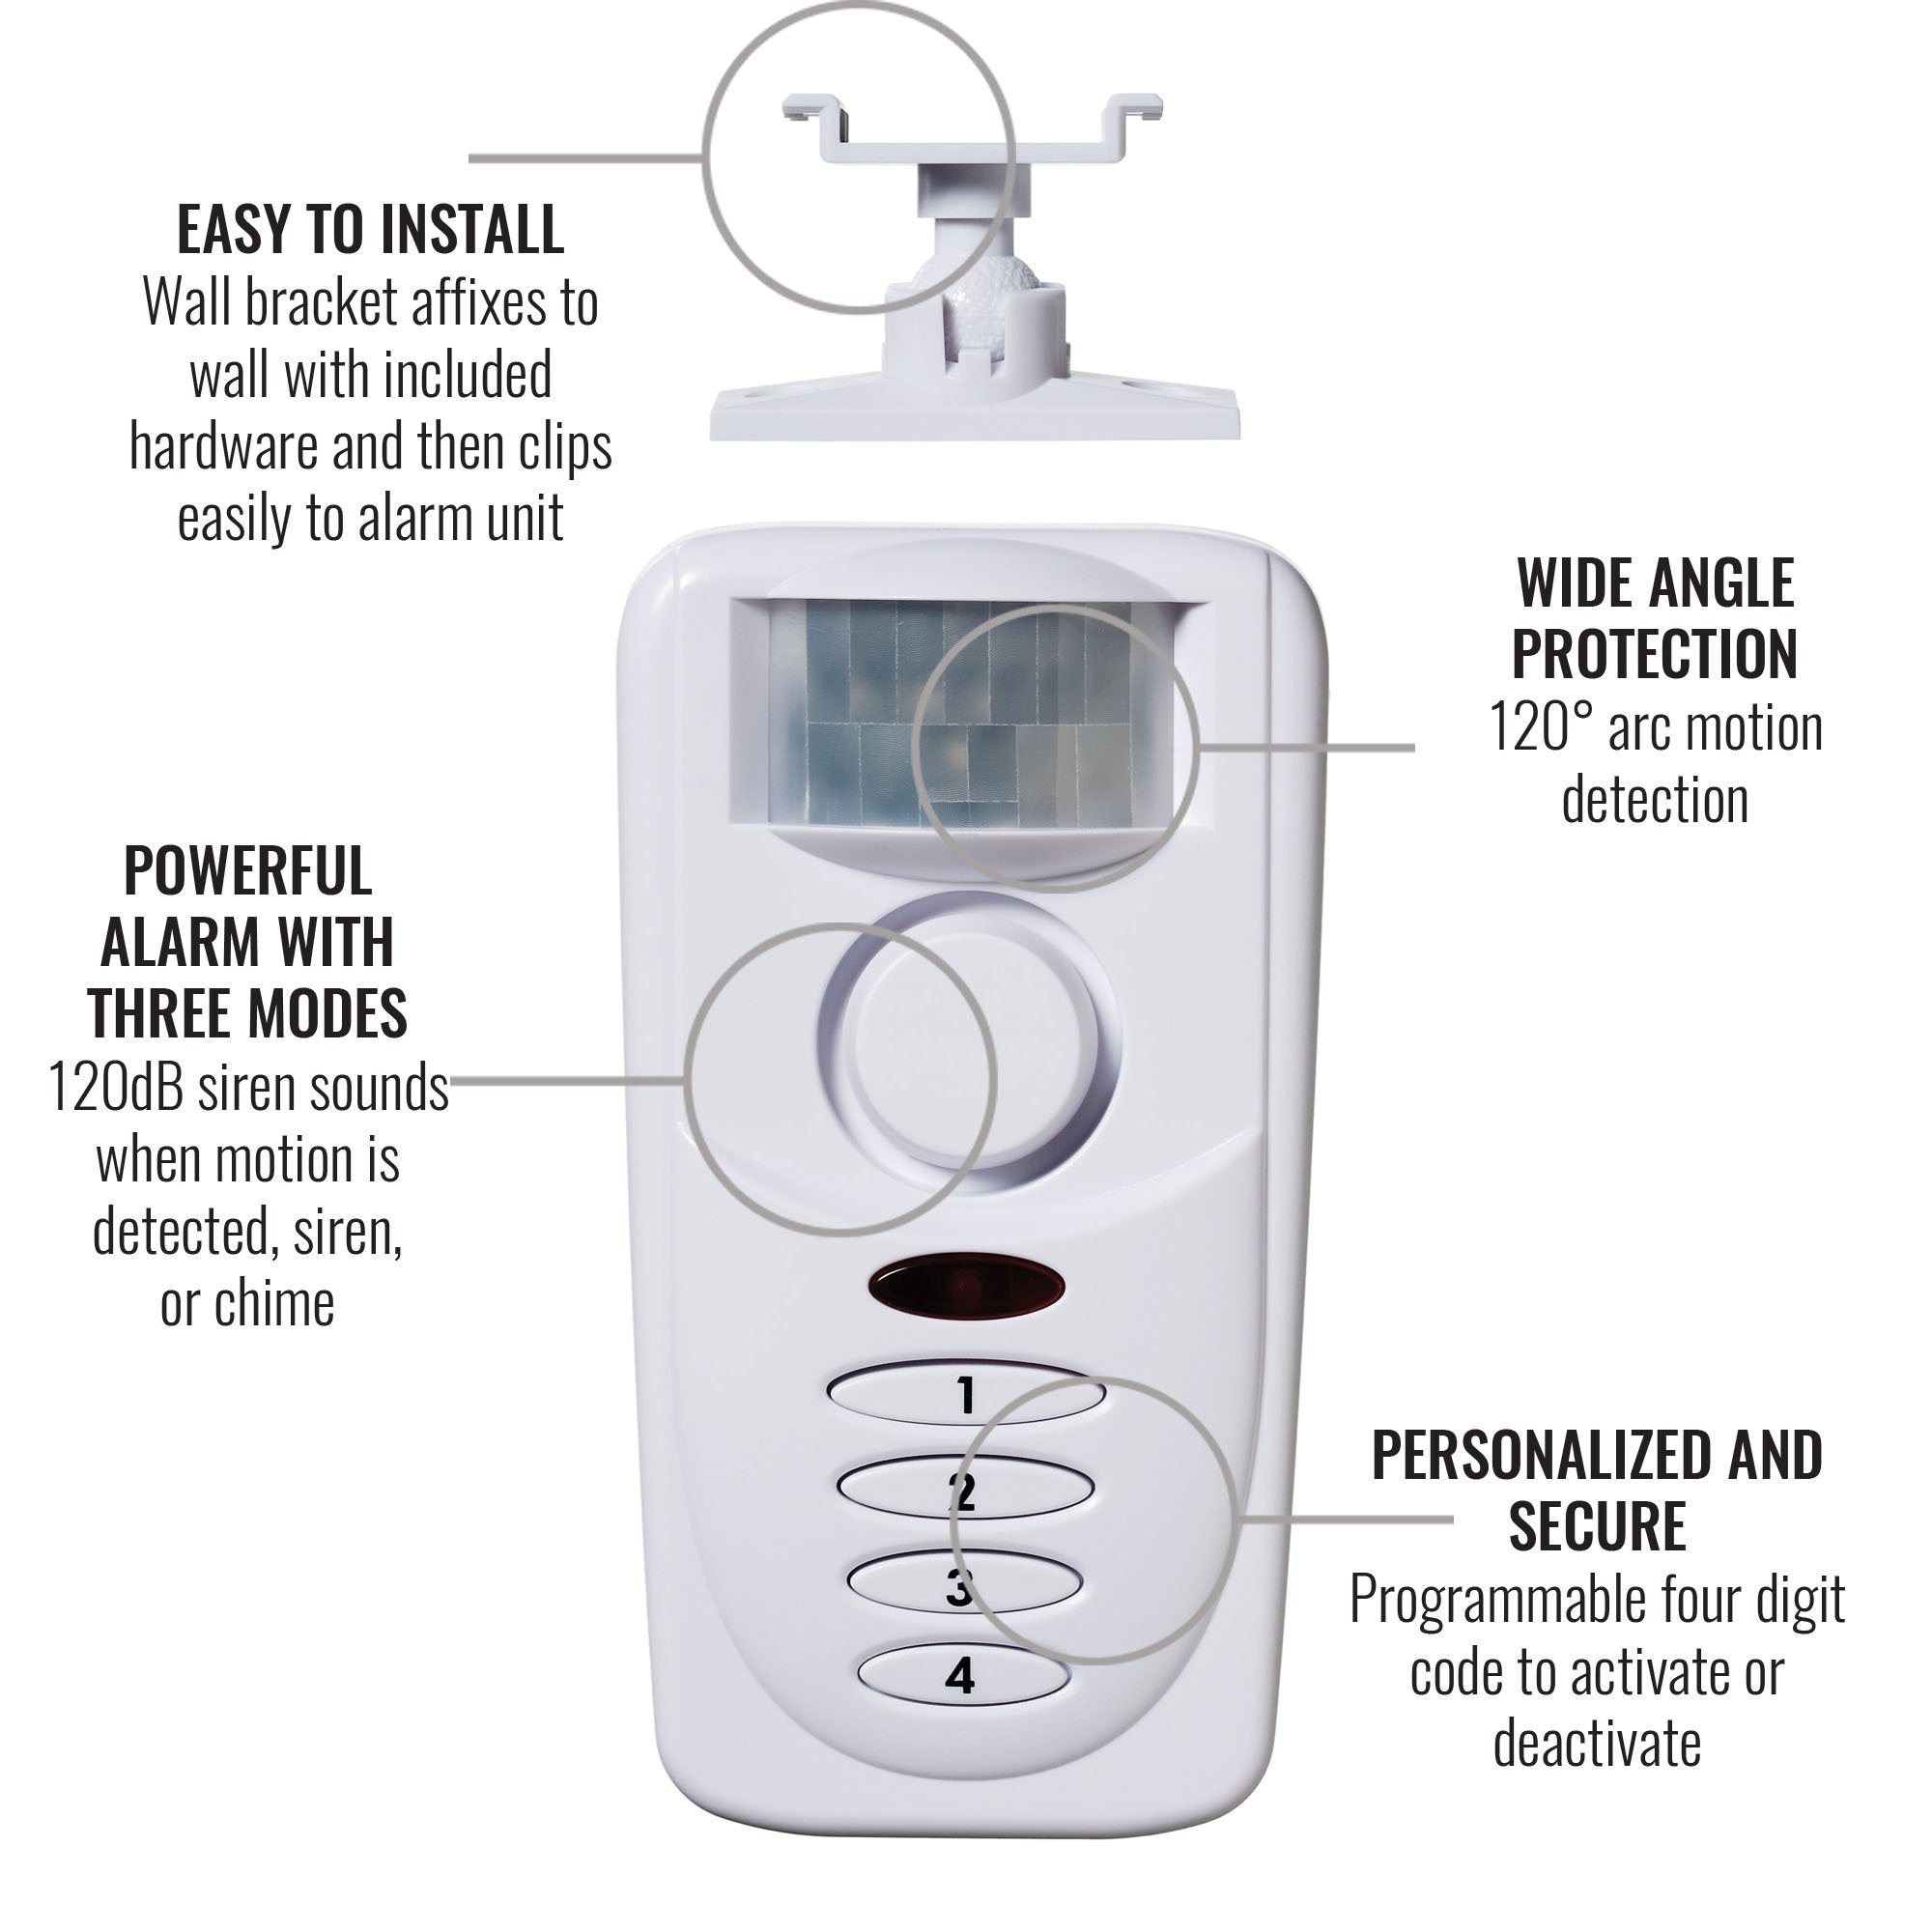 SABRE Wireless Motion Sensor Home Security Burglar Alarm with LOUD 120 dB Siren and 120 Degree Wide Angle Detection - DIY EASY Installation